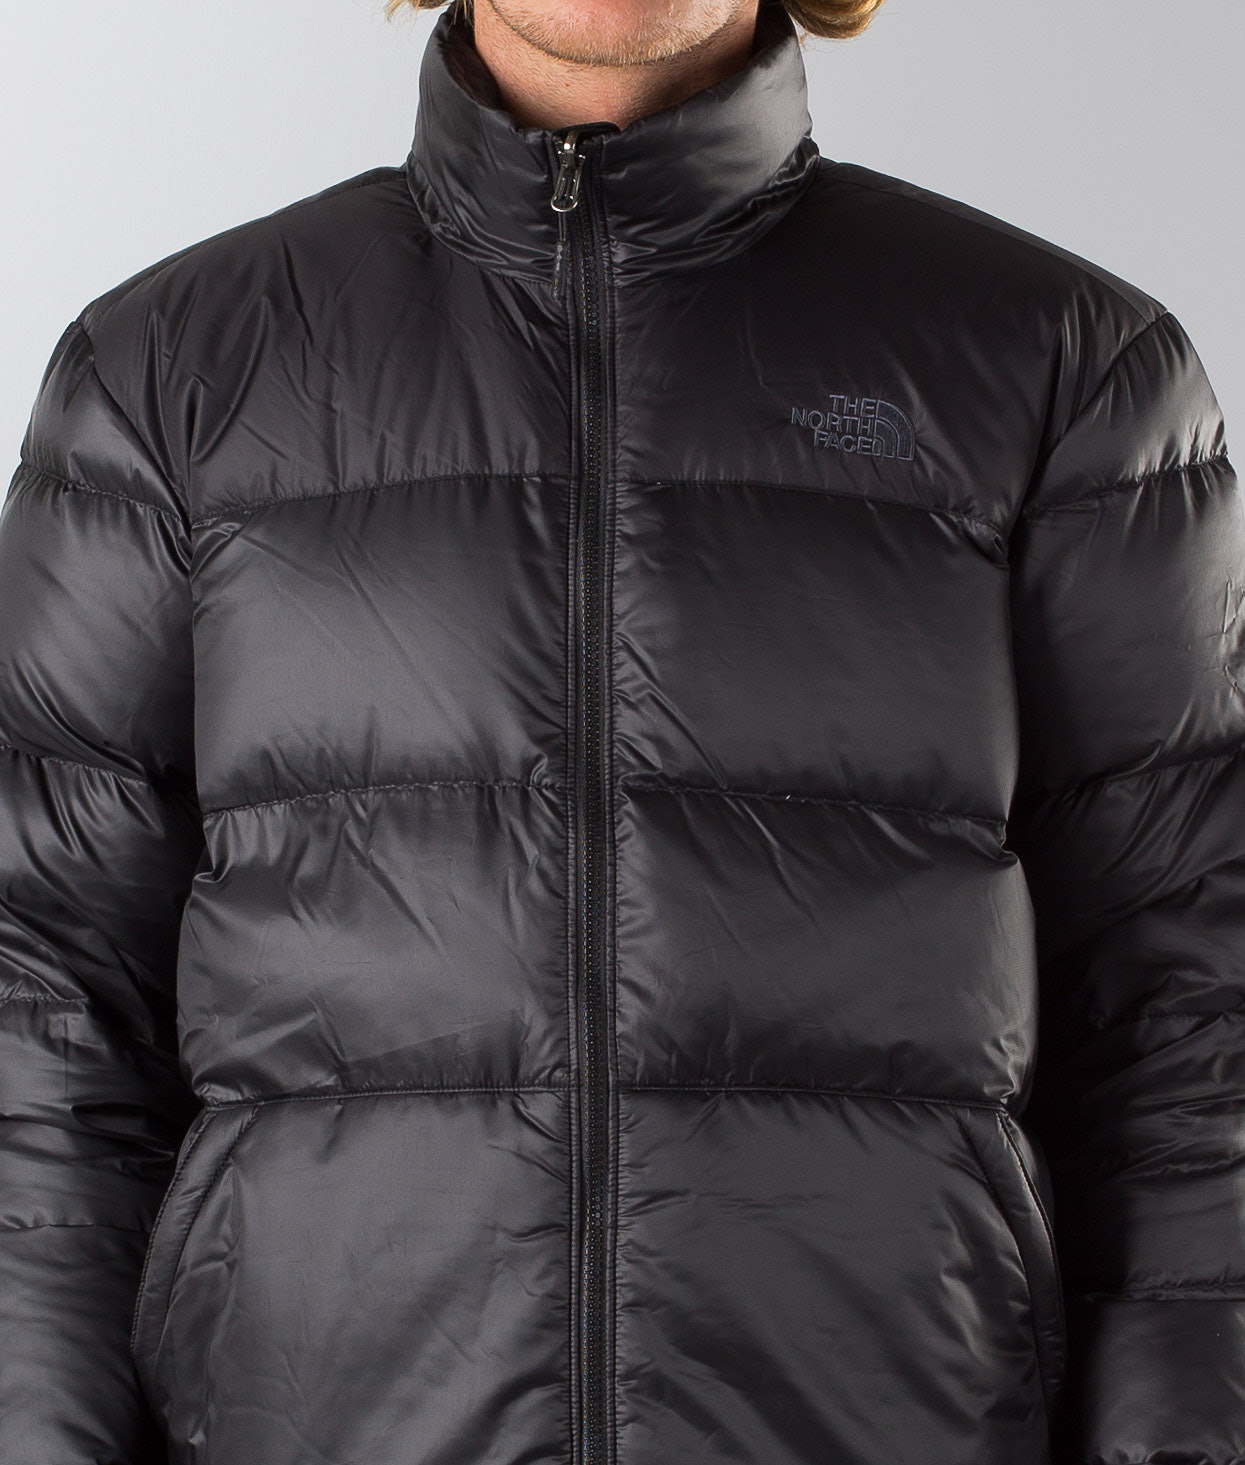 535a6942ea The North Face Nuptse III Jacke Tnf Black - Ridestore.de